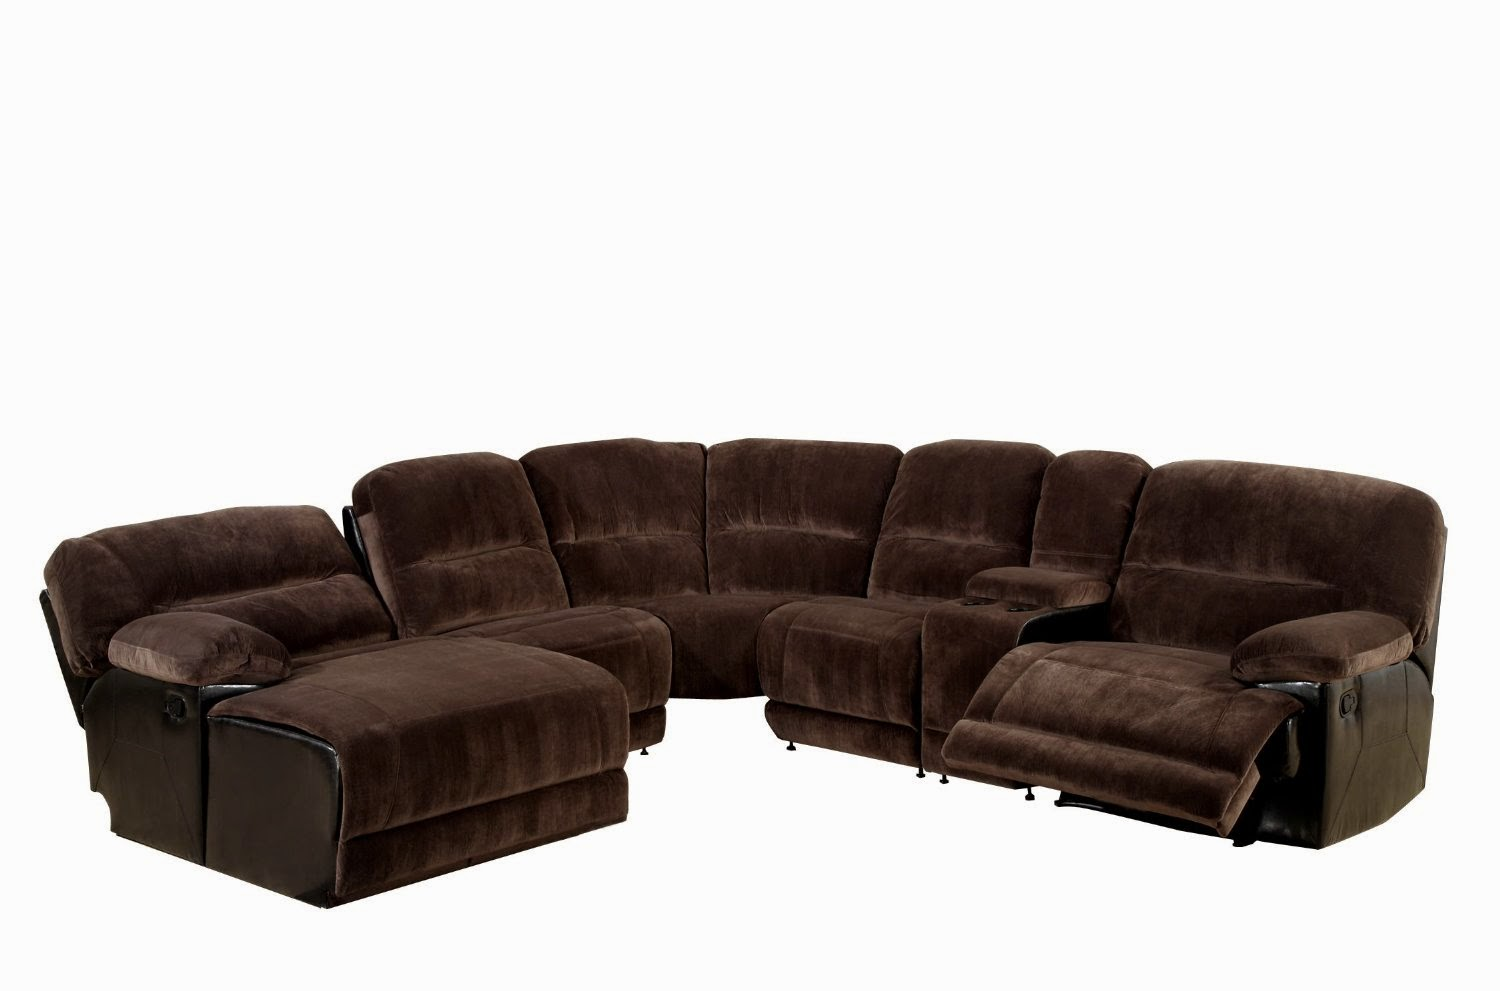 Sofa Recliner Reviews Microfiber Recliner Sectional Sofa Couch Chaise